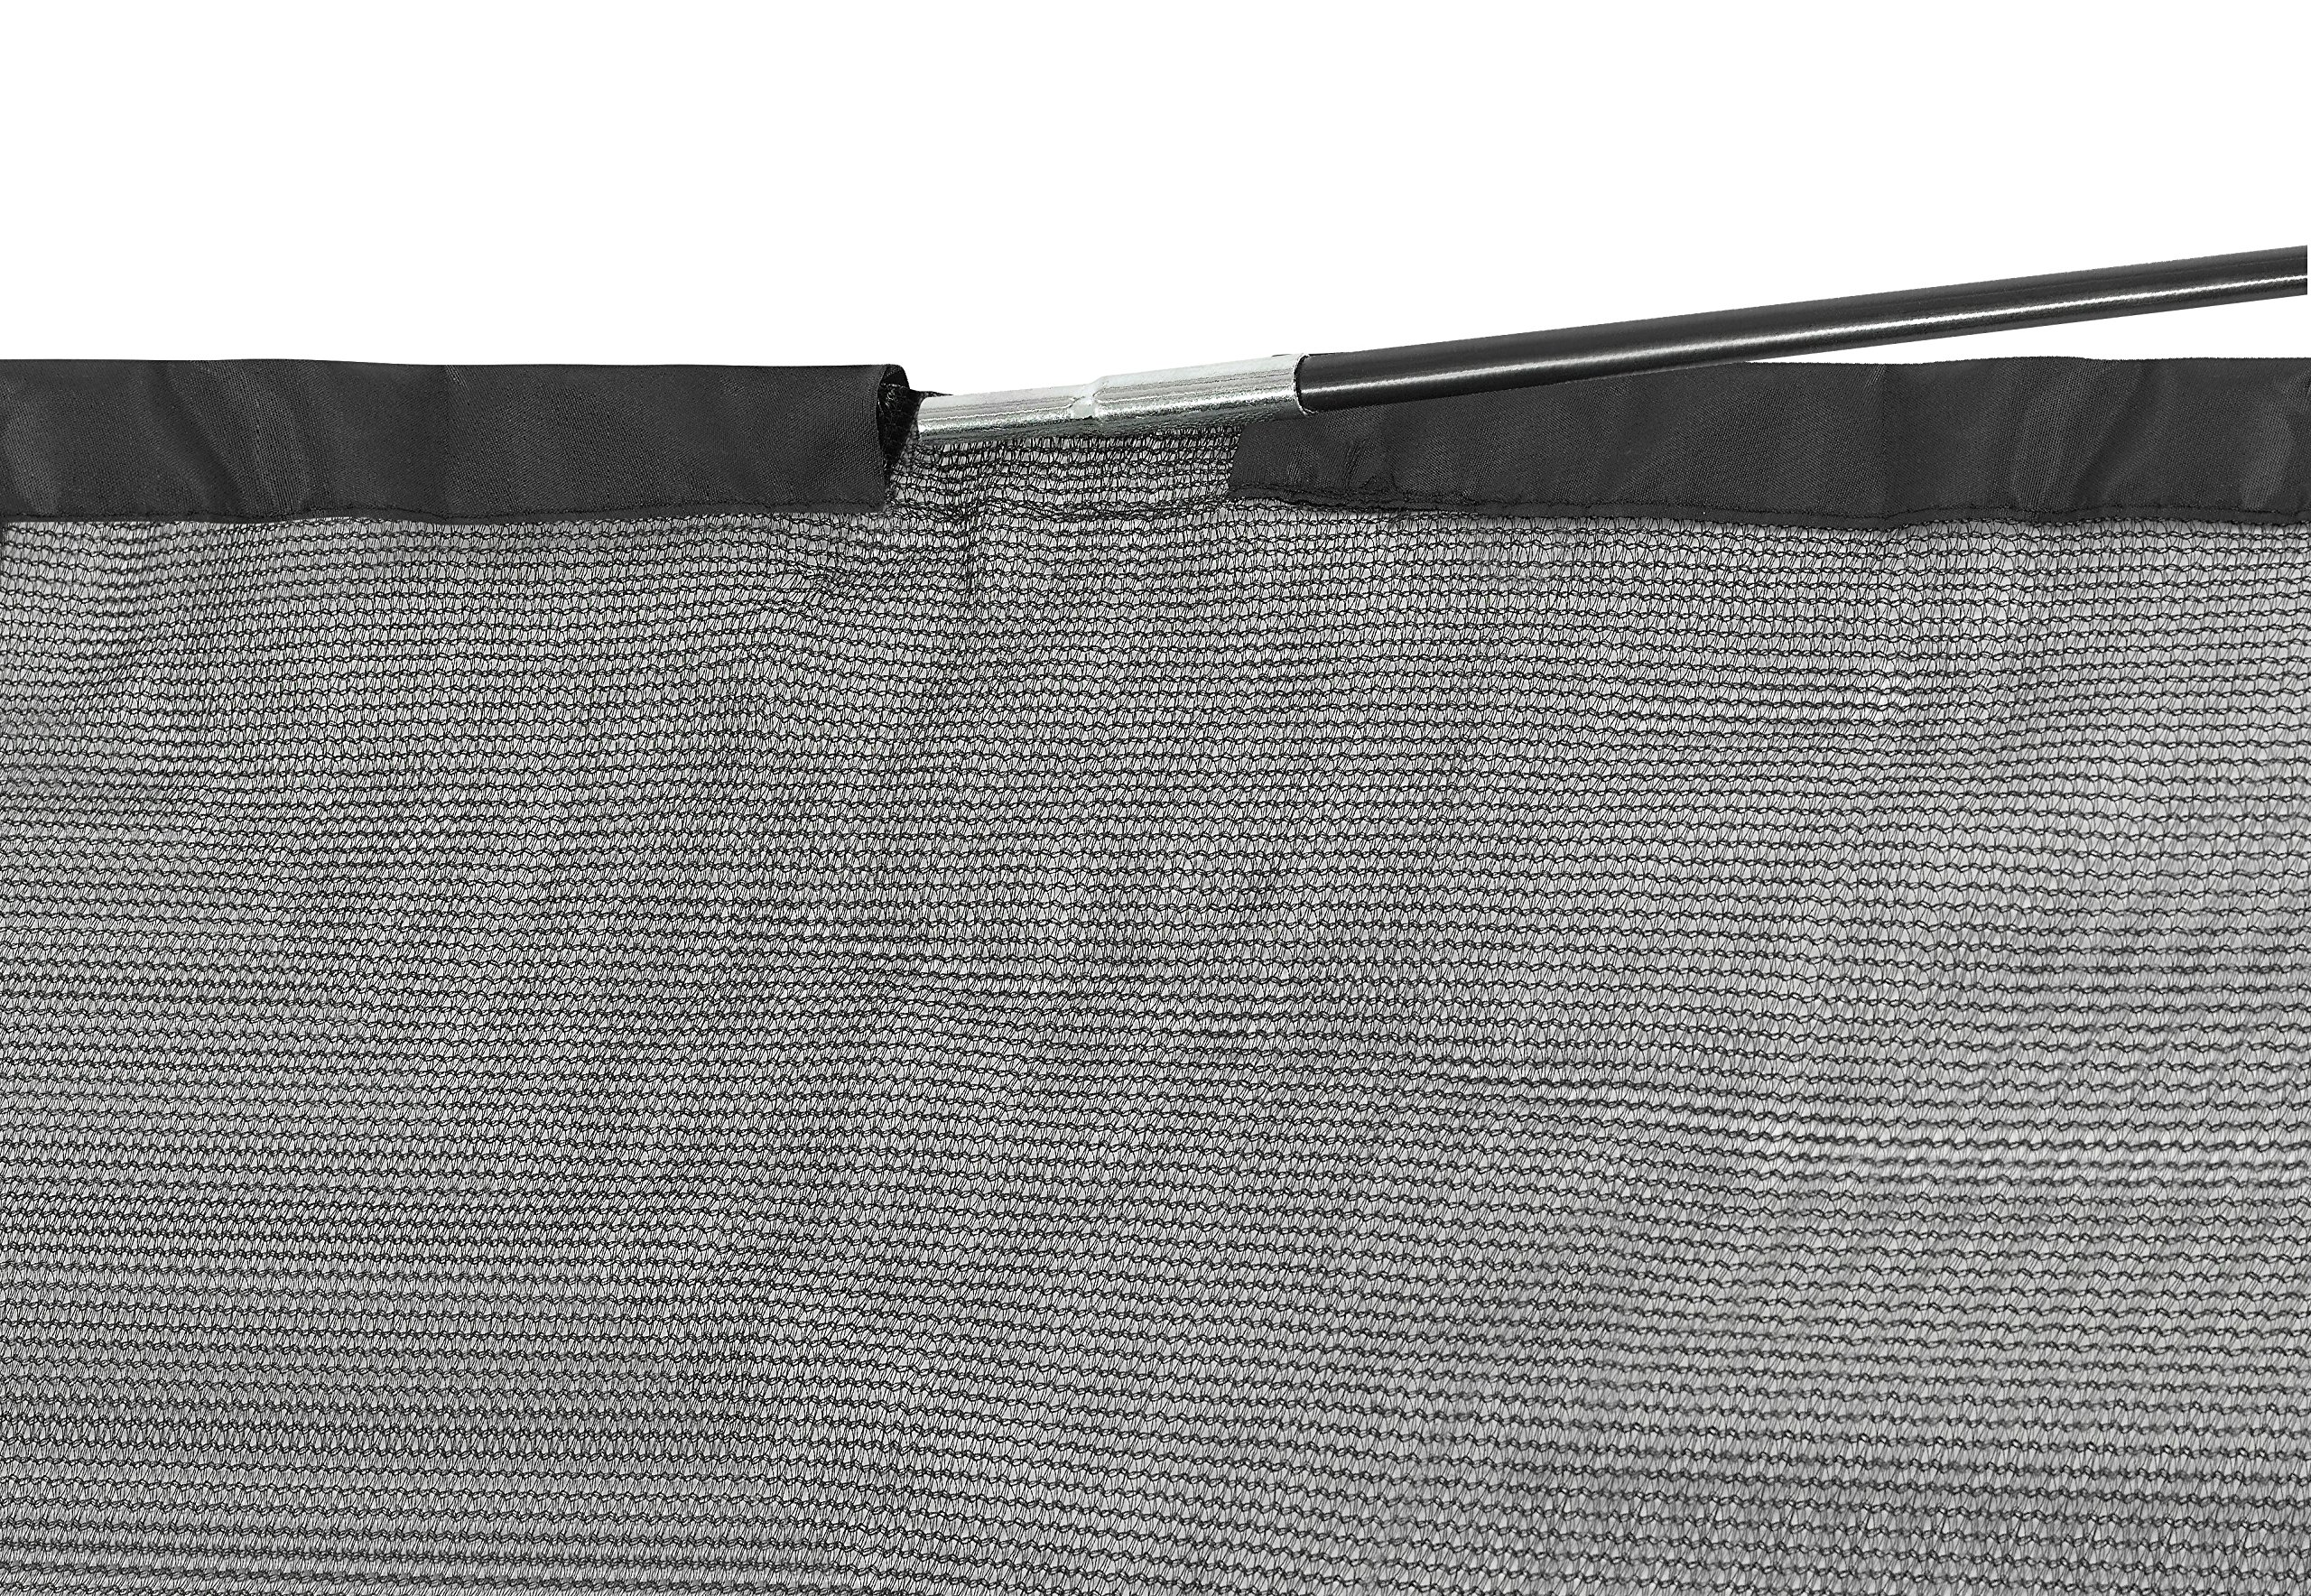 SKYTRIC Trampoline Enclosure Net (Universal) 15 ft Frame: 6 Curved Pole: with Top Ring Enclosure Systems -Sleeve on top Type- by SKYTRIC (Image #4)